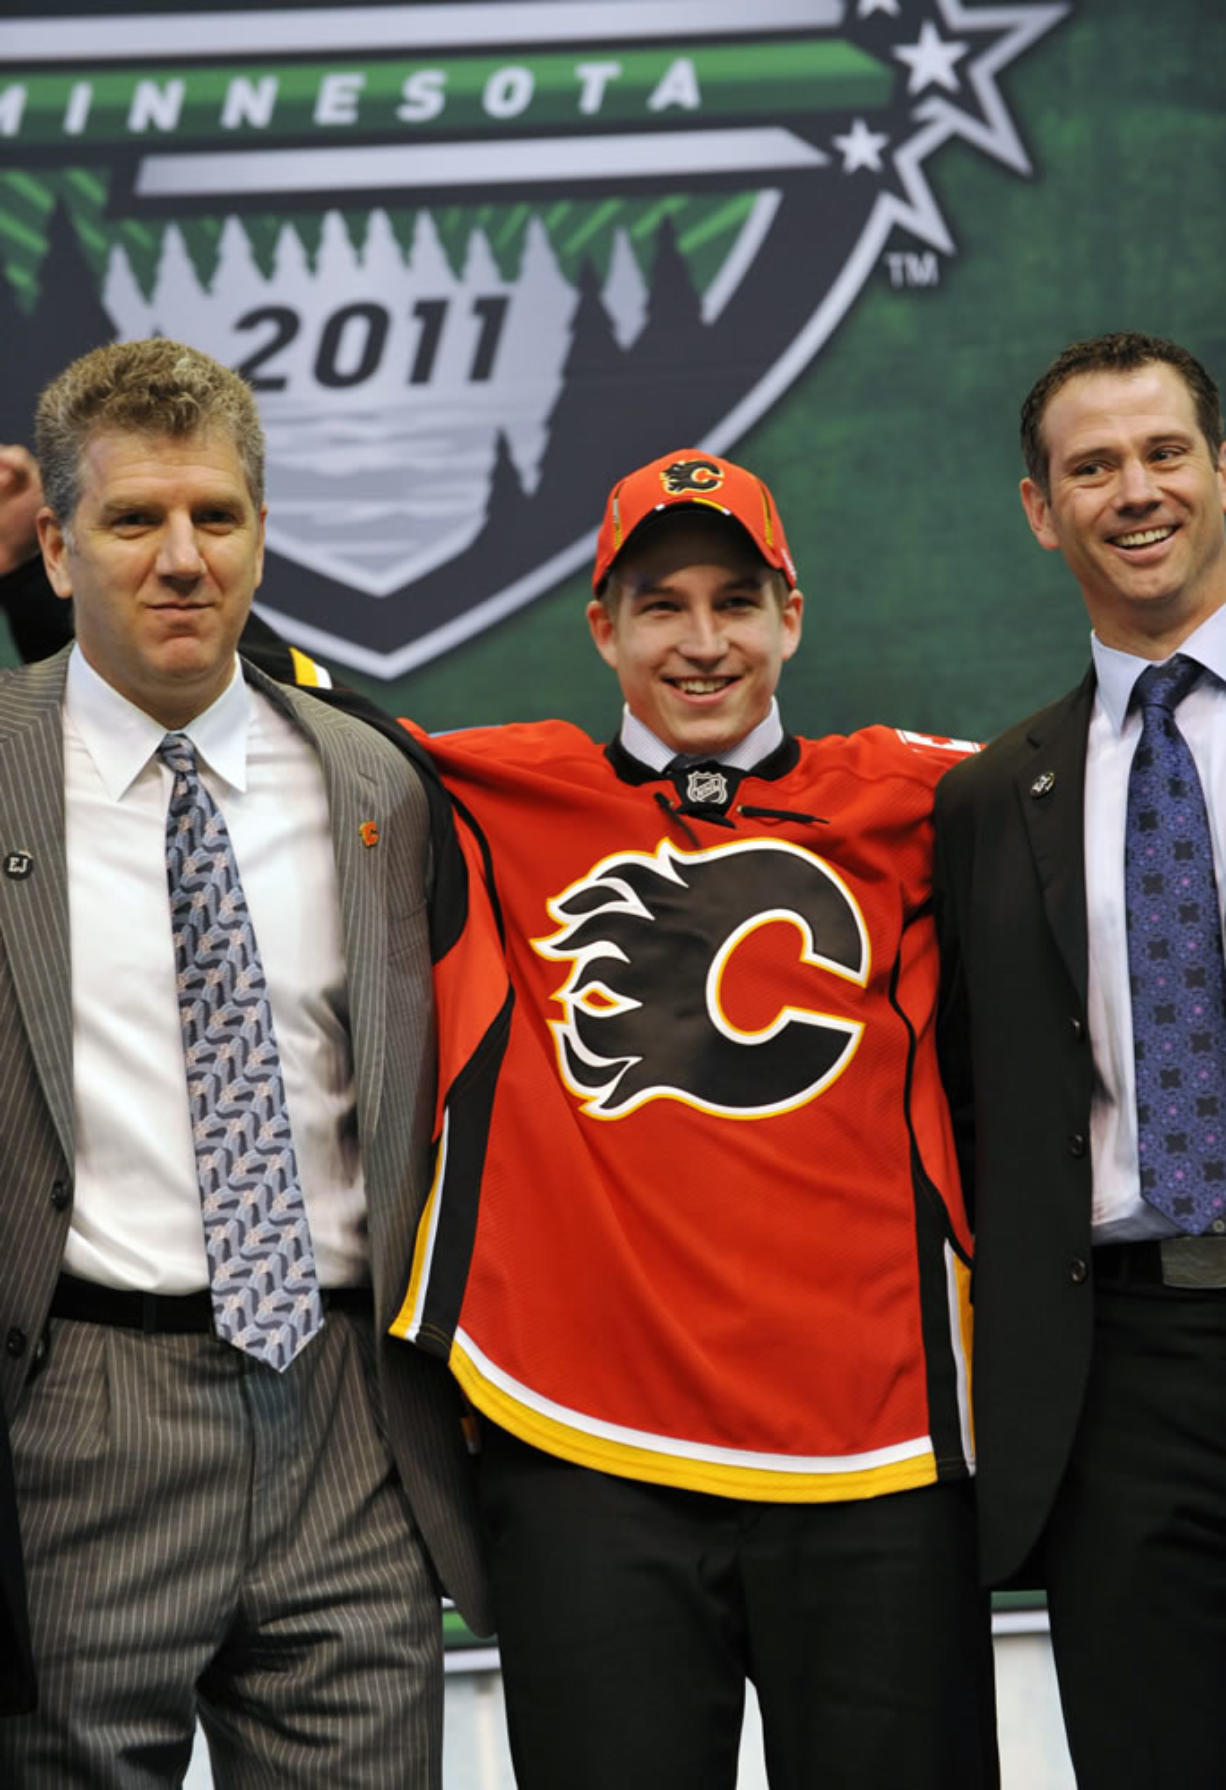 Portland Winterhawks' Sven Bartschi poses on stage after he was drafted in the first round by the Calgary Flames in the National Hockey League entry draft on Friday.